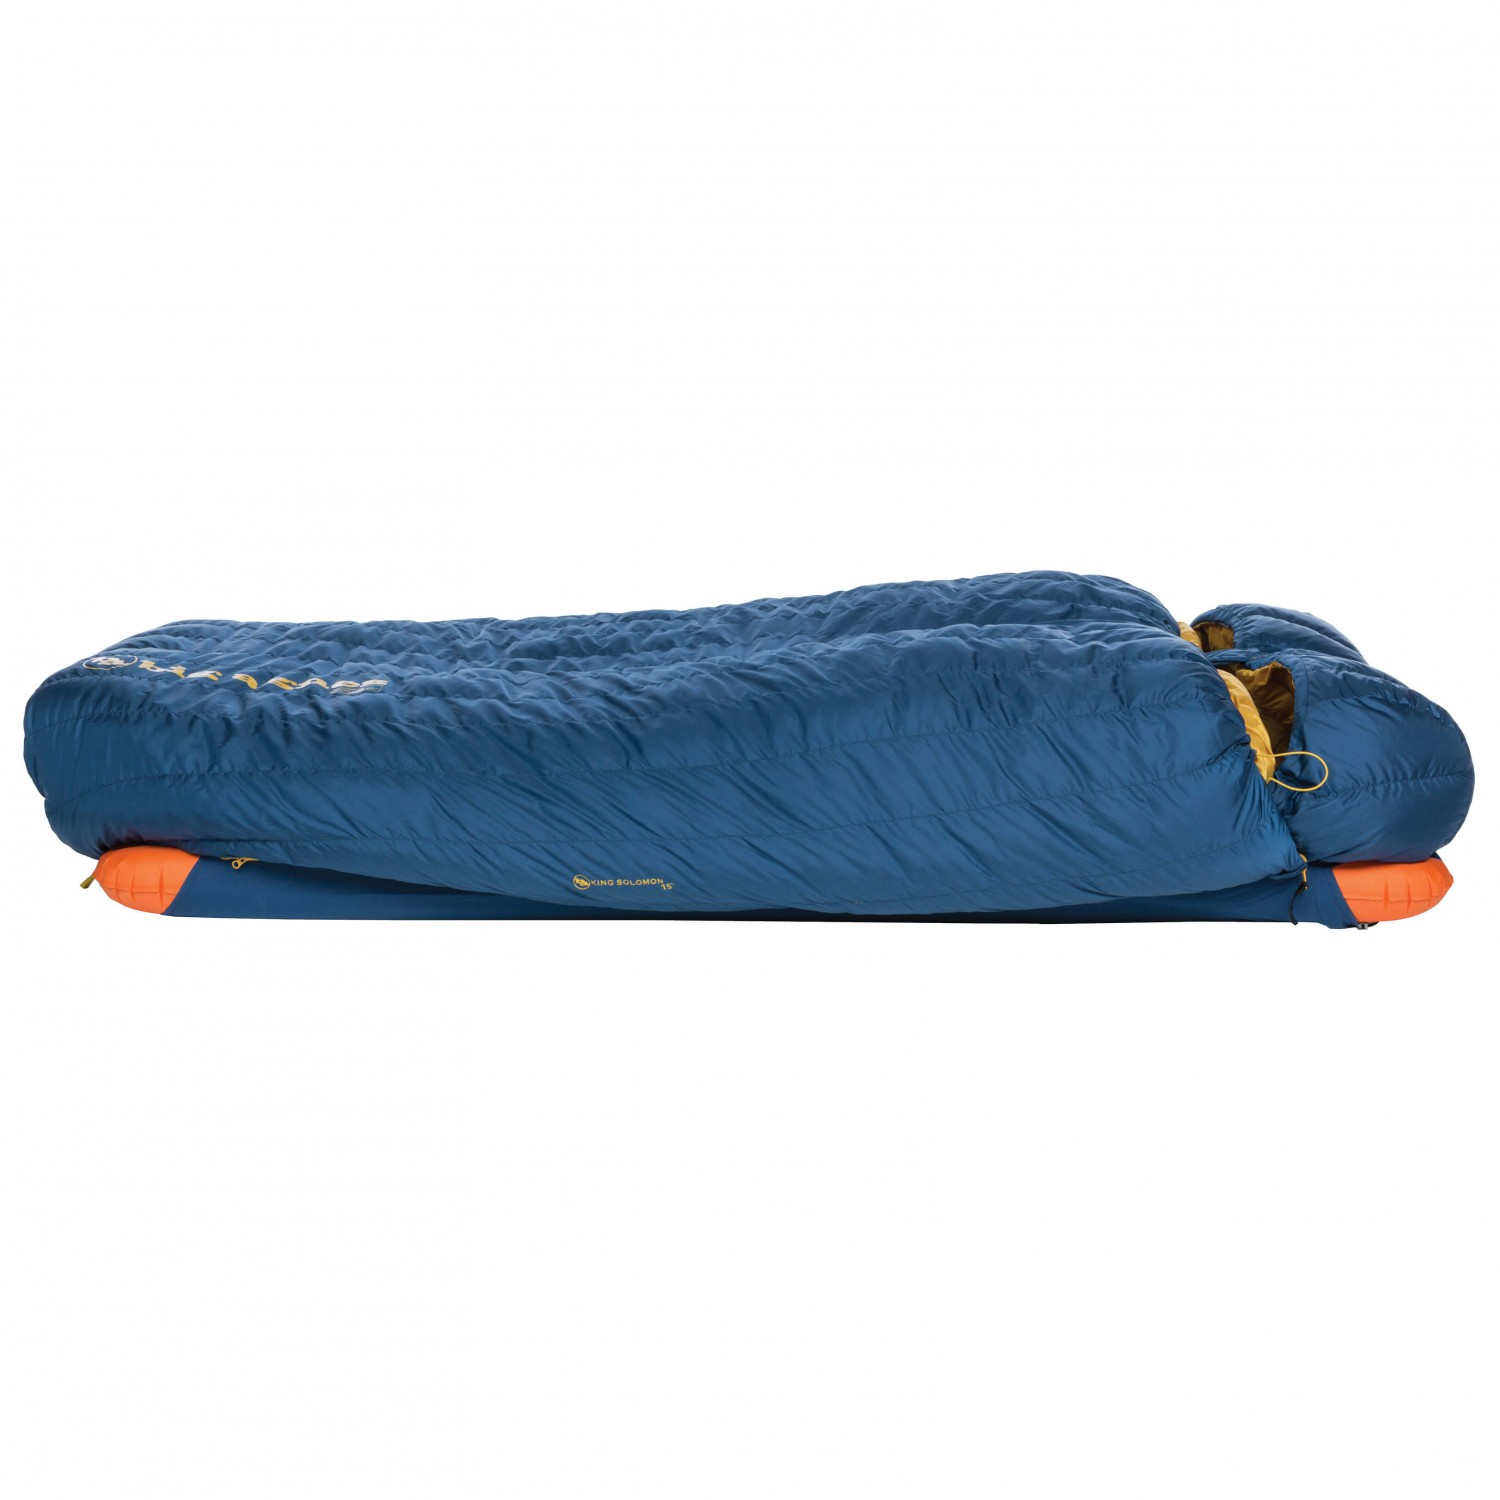 Agnes King Solomon 15 Sleeping Bag